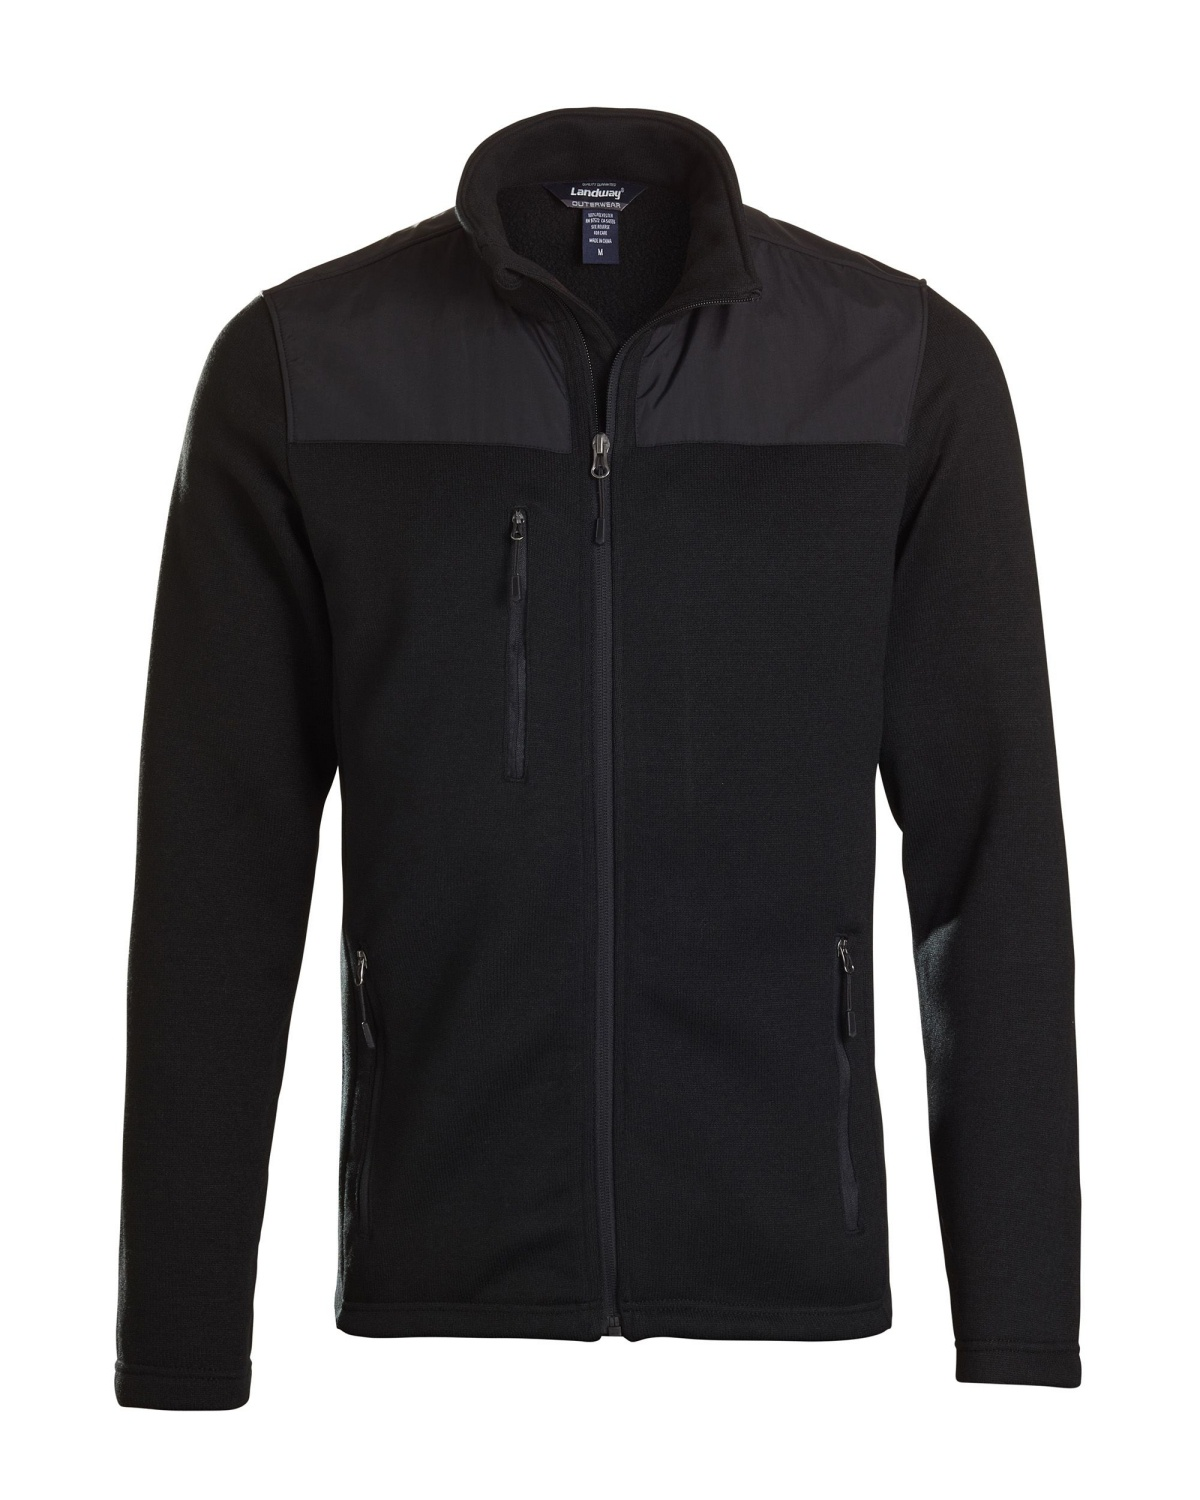 'Landway 9888 Men's Wind Resistant Sweater Fleece Jacket'